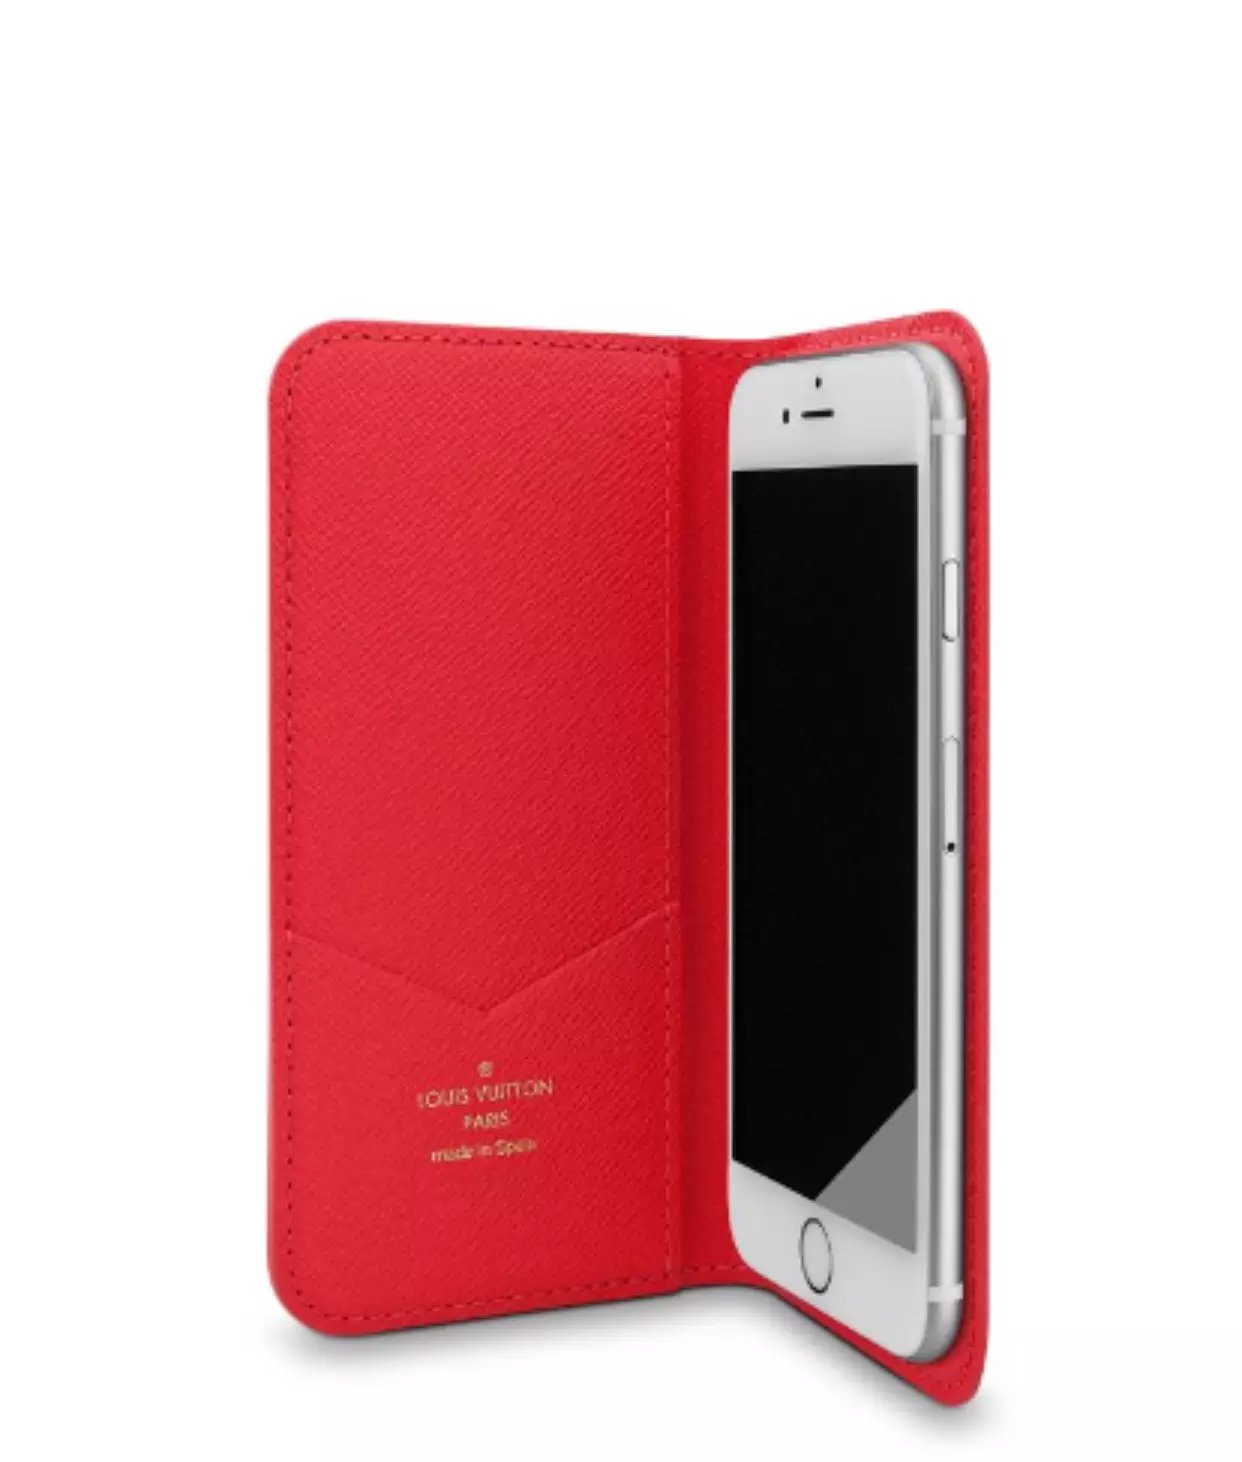 iphone handyhülle mini iphone hülle Louis Vuitton iphone7 hülle iphone hülle 7  iphone 7 hülle outdoor dein design handyhülle iphone hülle 3gs iphone 7 displaygröße eigene handyhülle erstellen